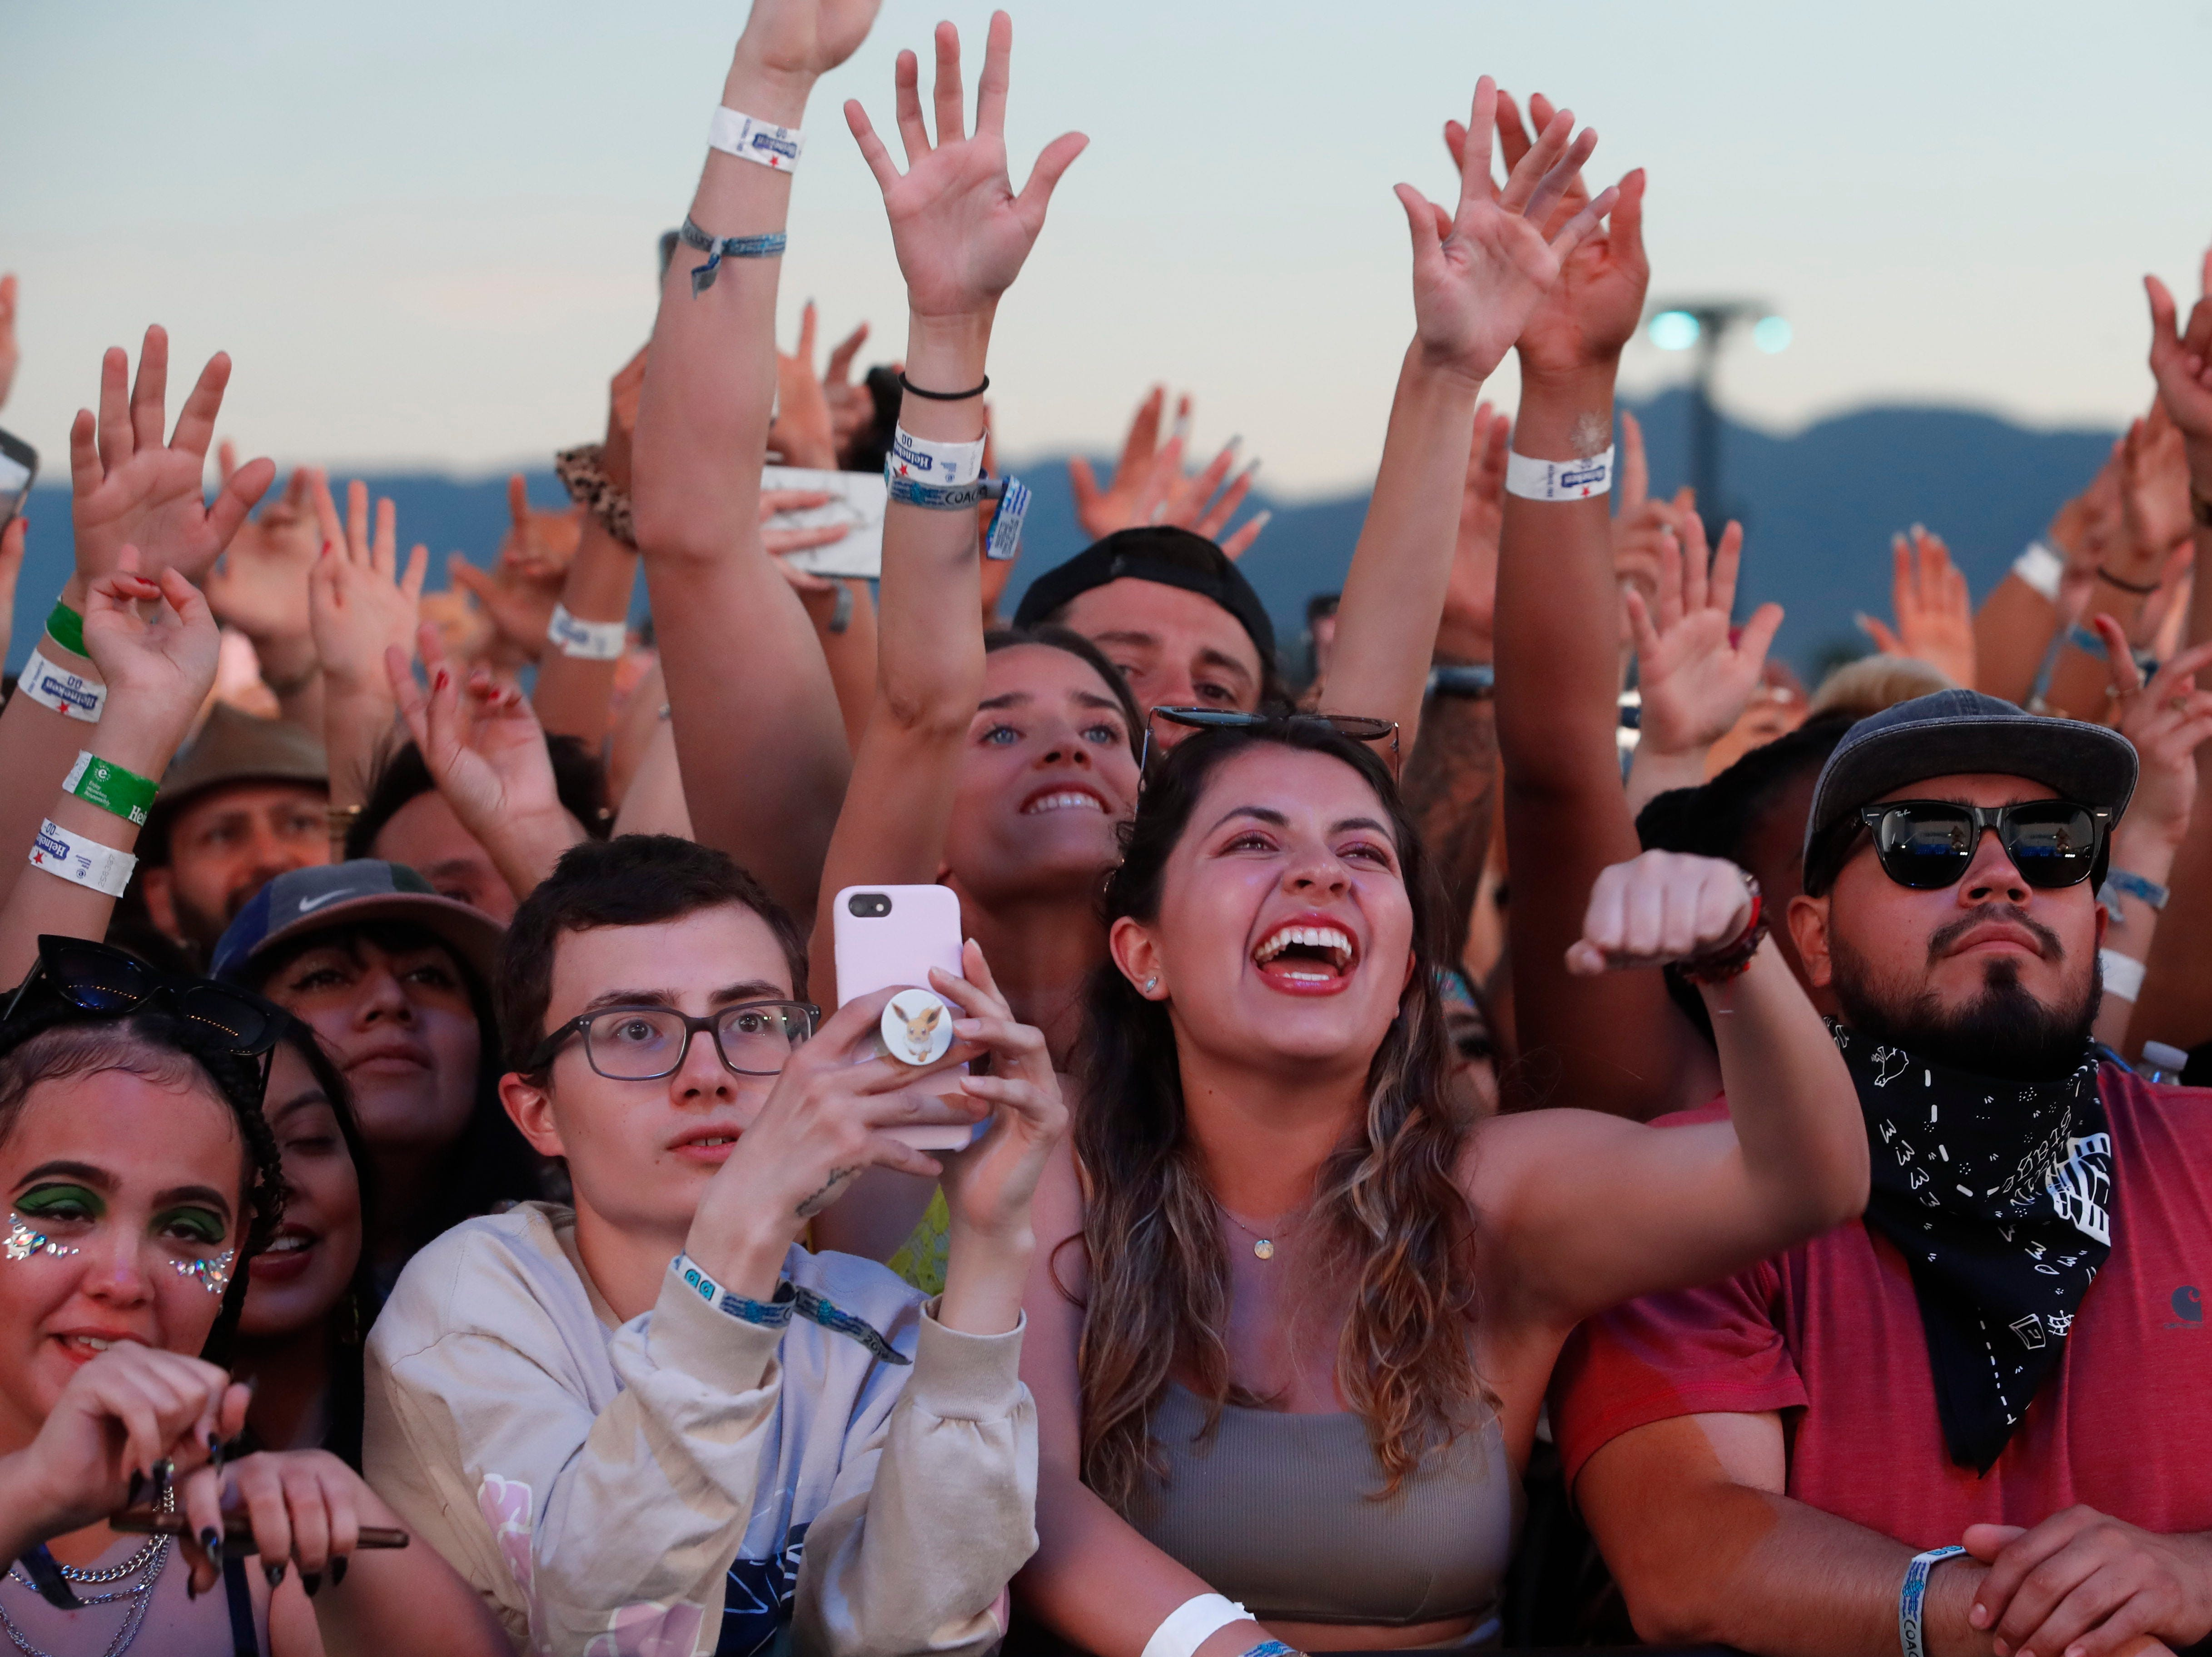 Fans of J Balvin cheer his performance on the Coachella Stage during the 2019 Coachella Valley Music and Arts Festival held at the Empire Polo Club in Indio, California on April 13, 2019.